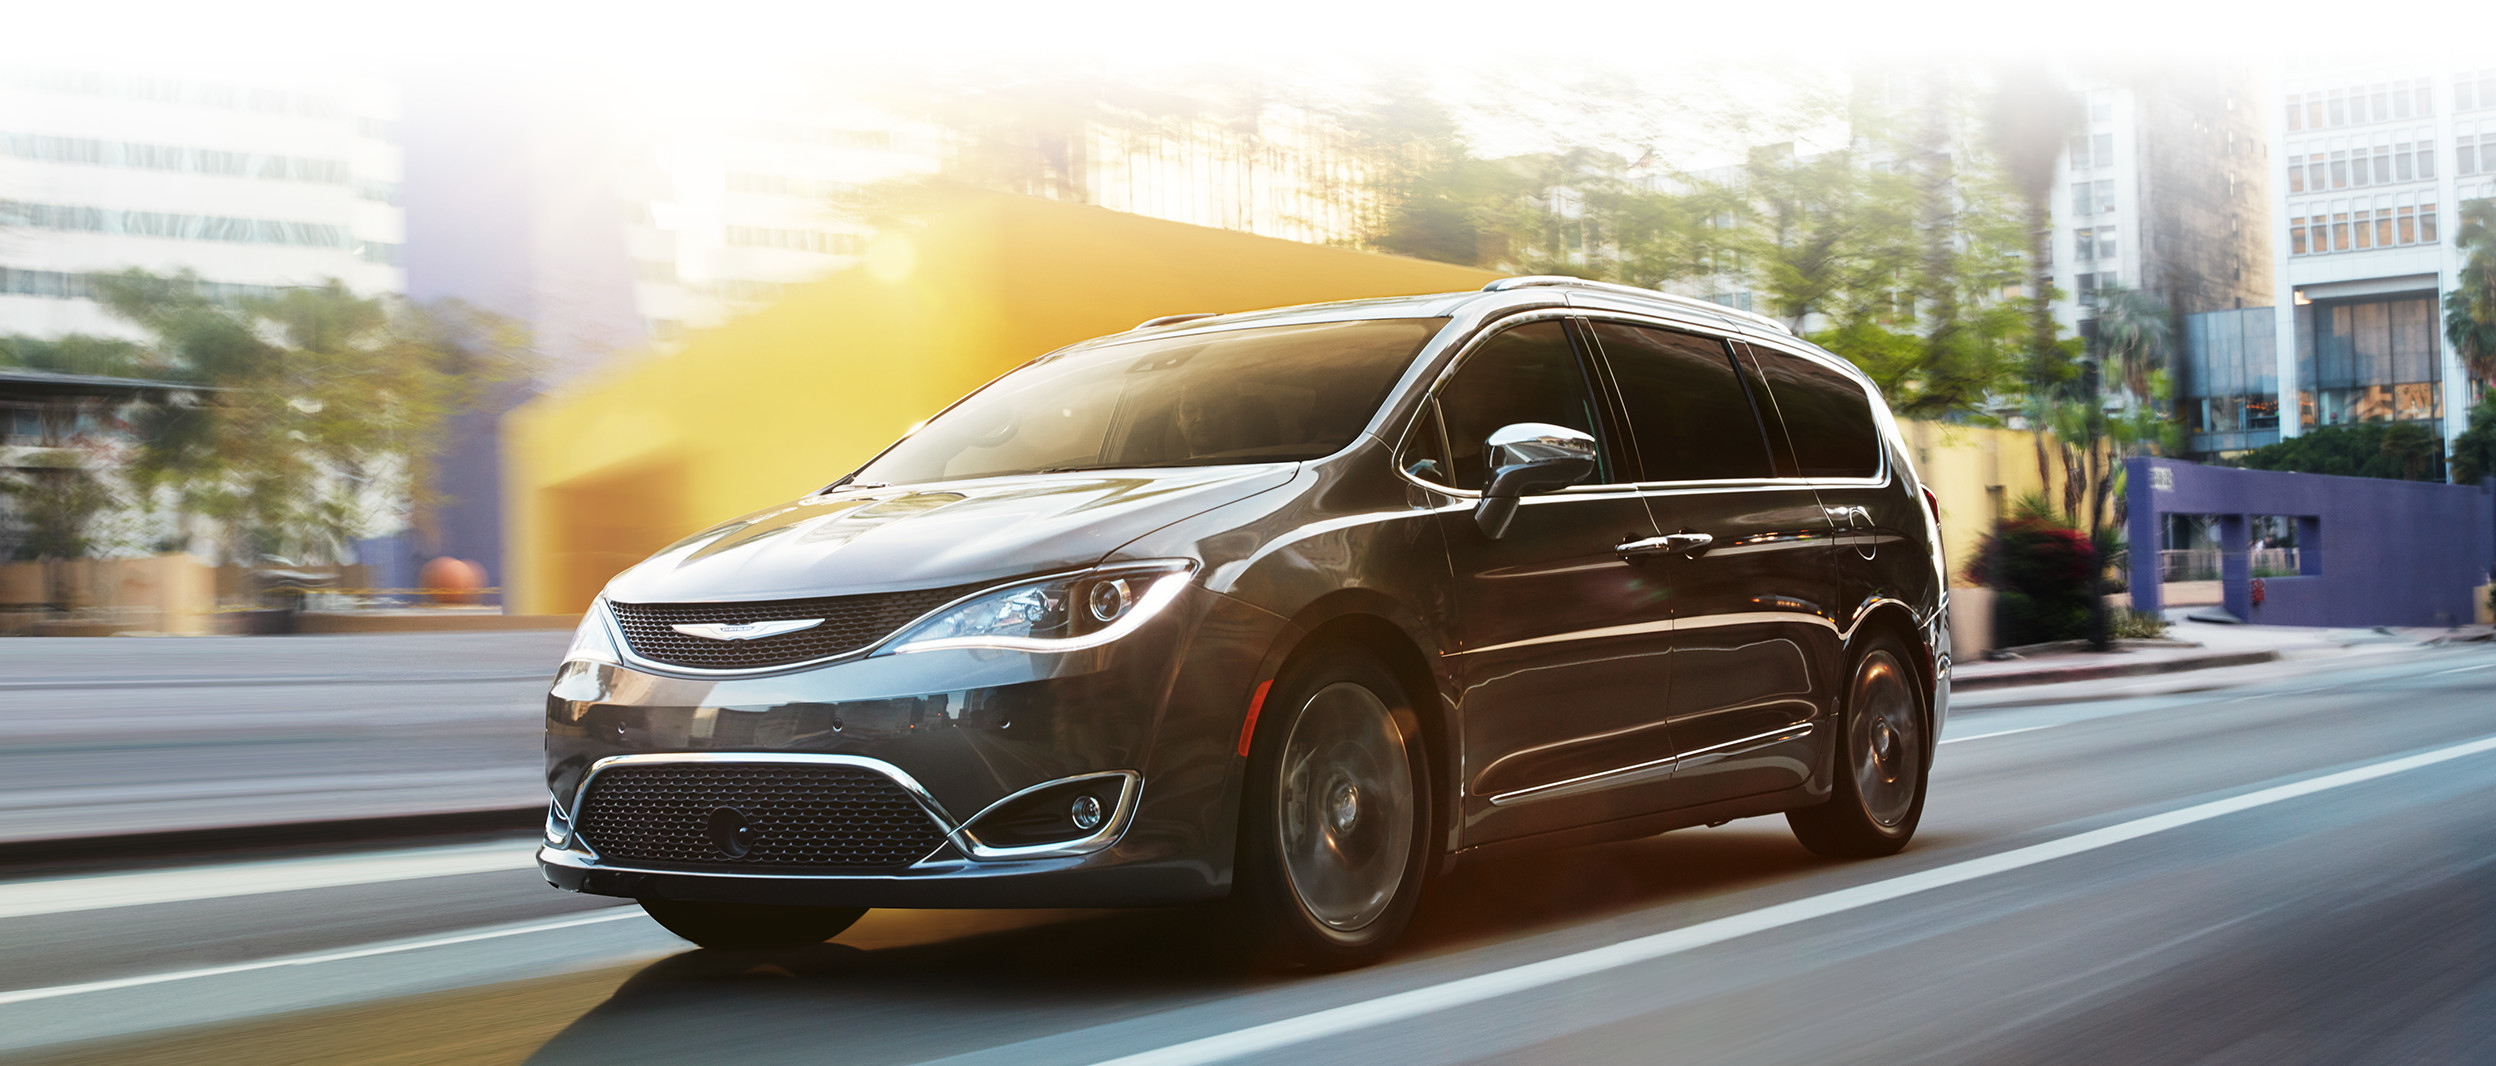 Grey Chrysler Pacifica Driving Through the City